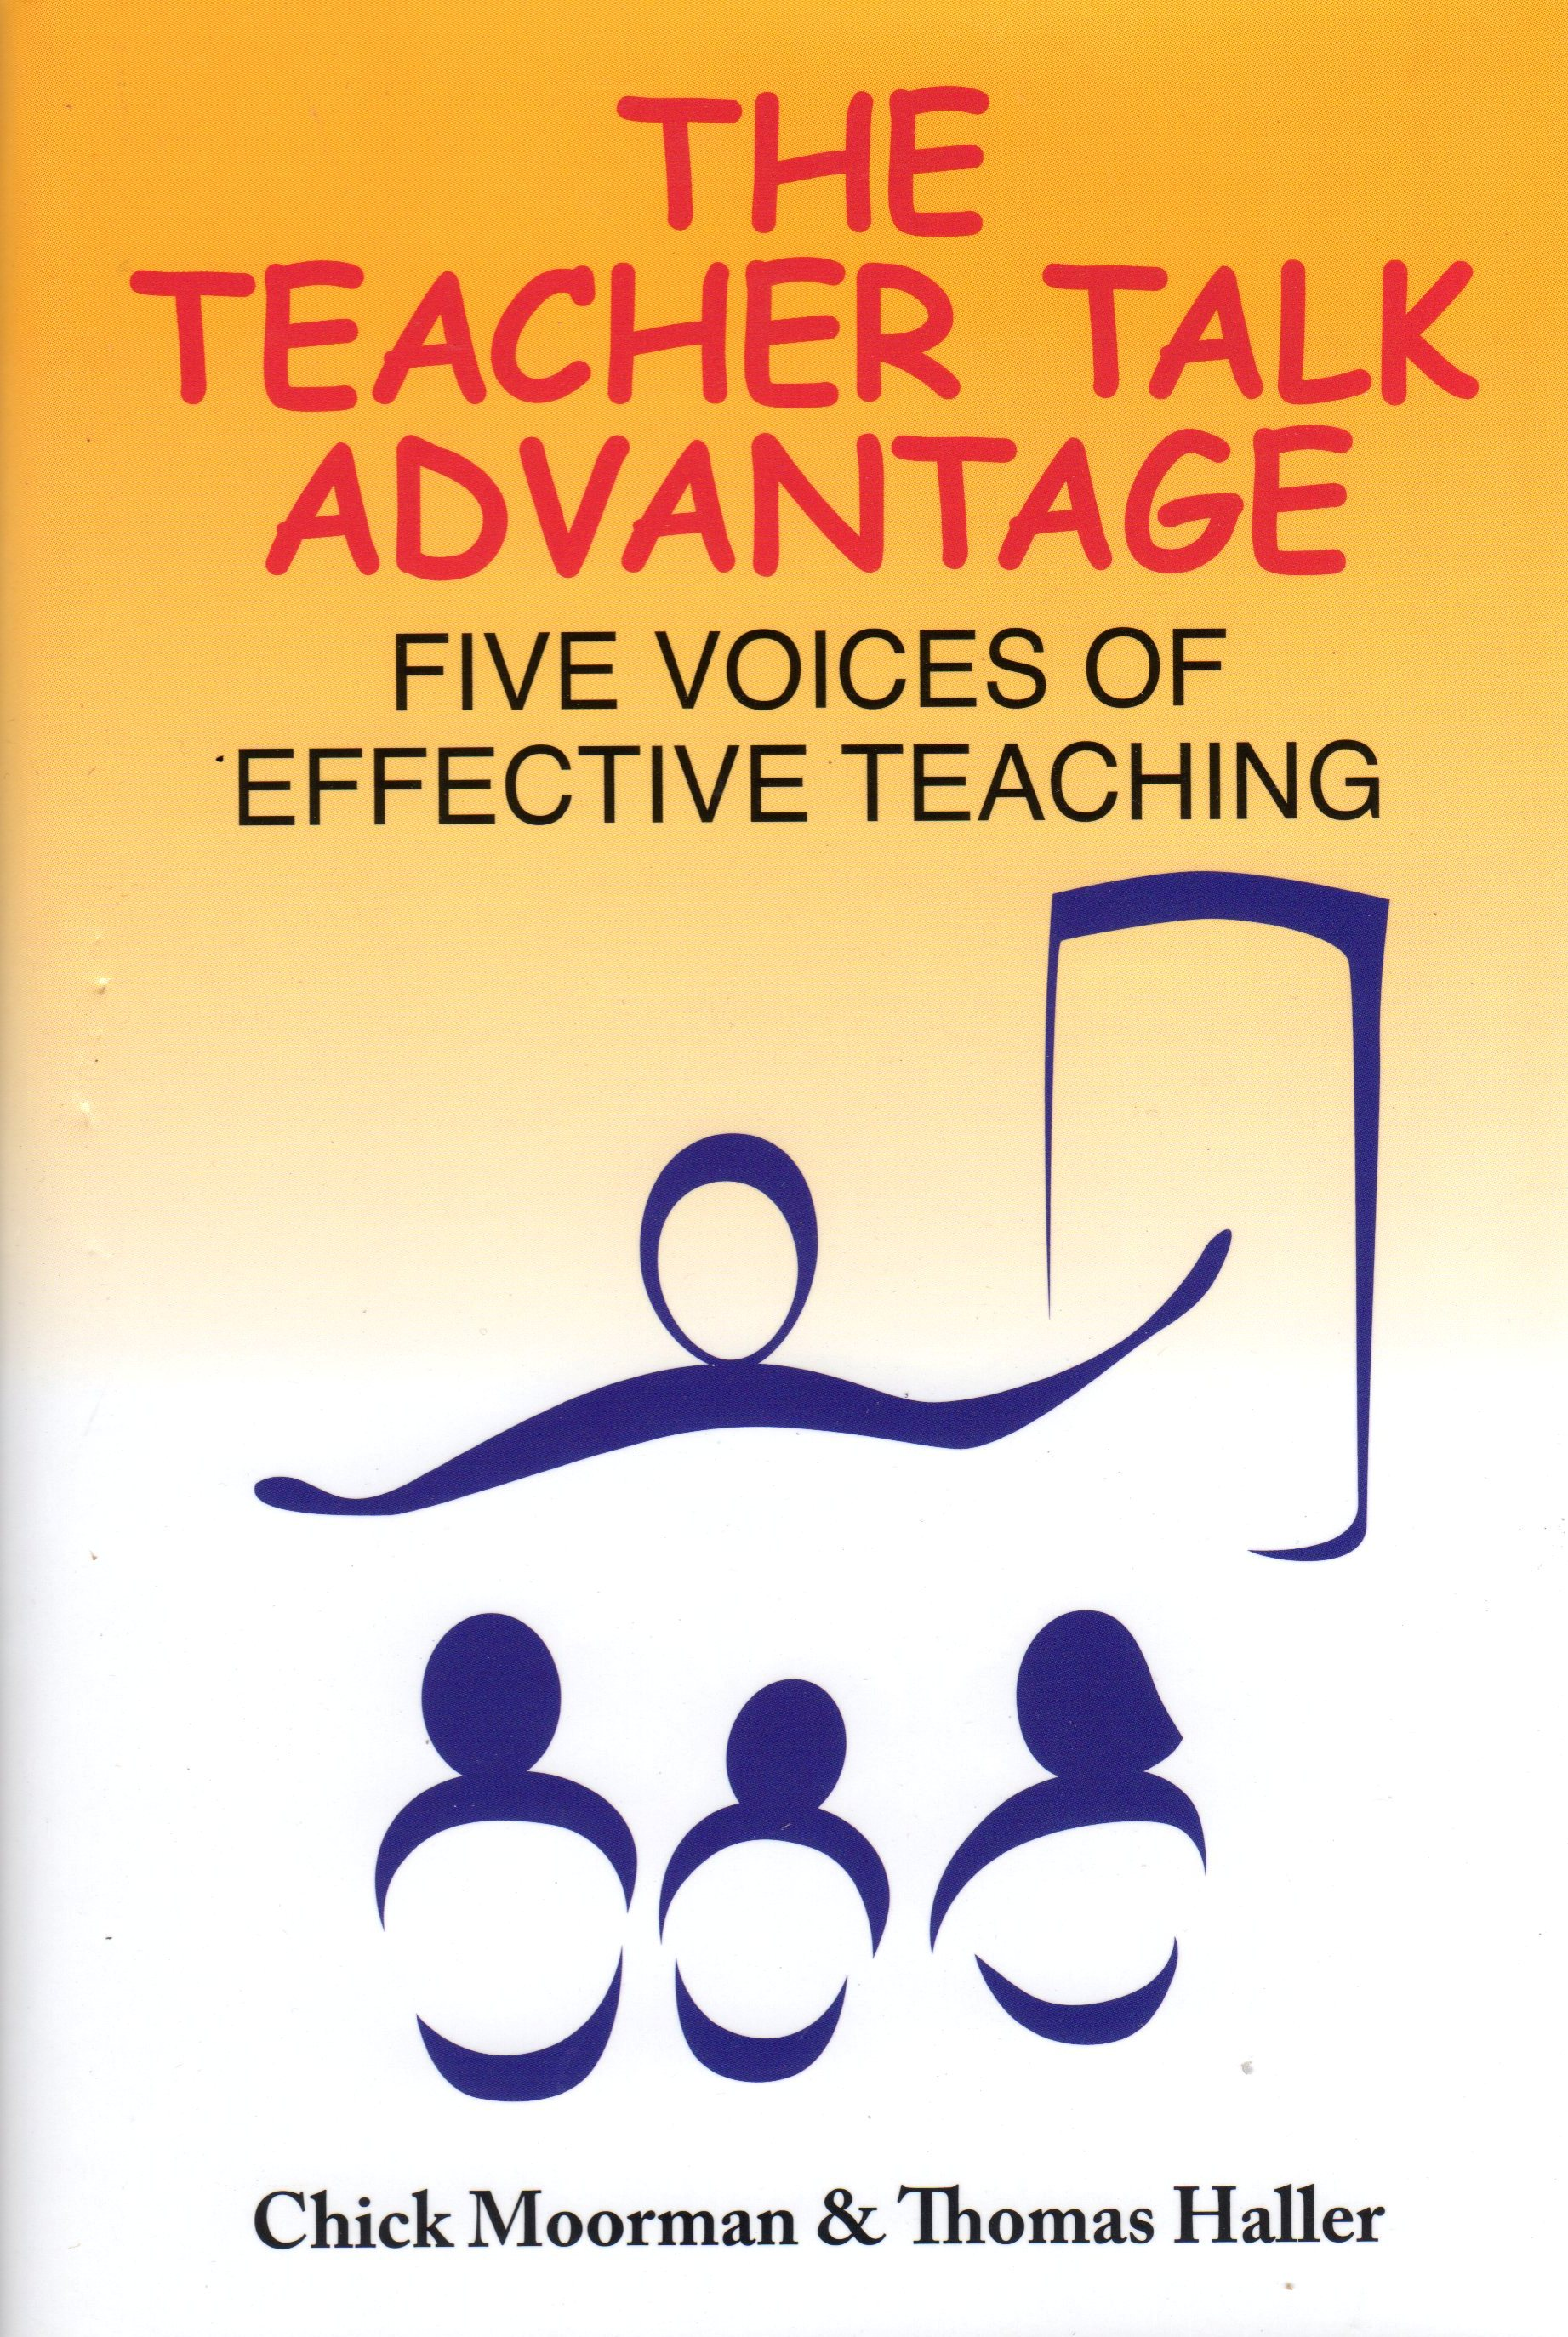 The Teacher Talk Advantage